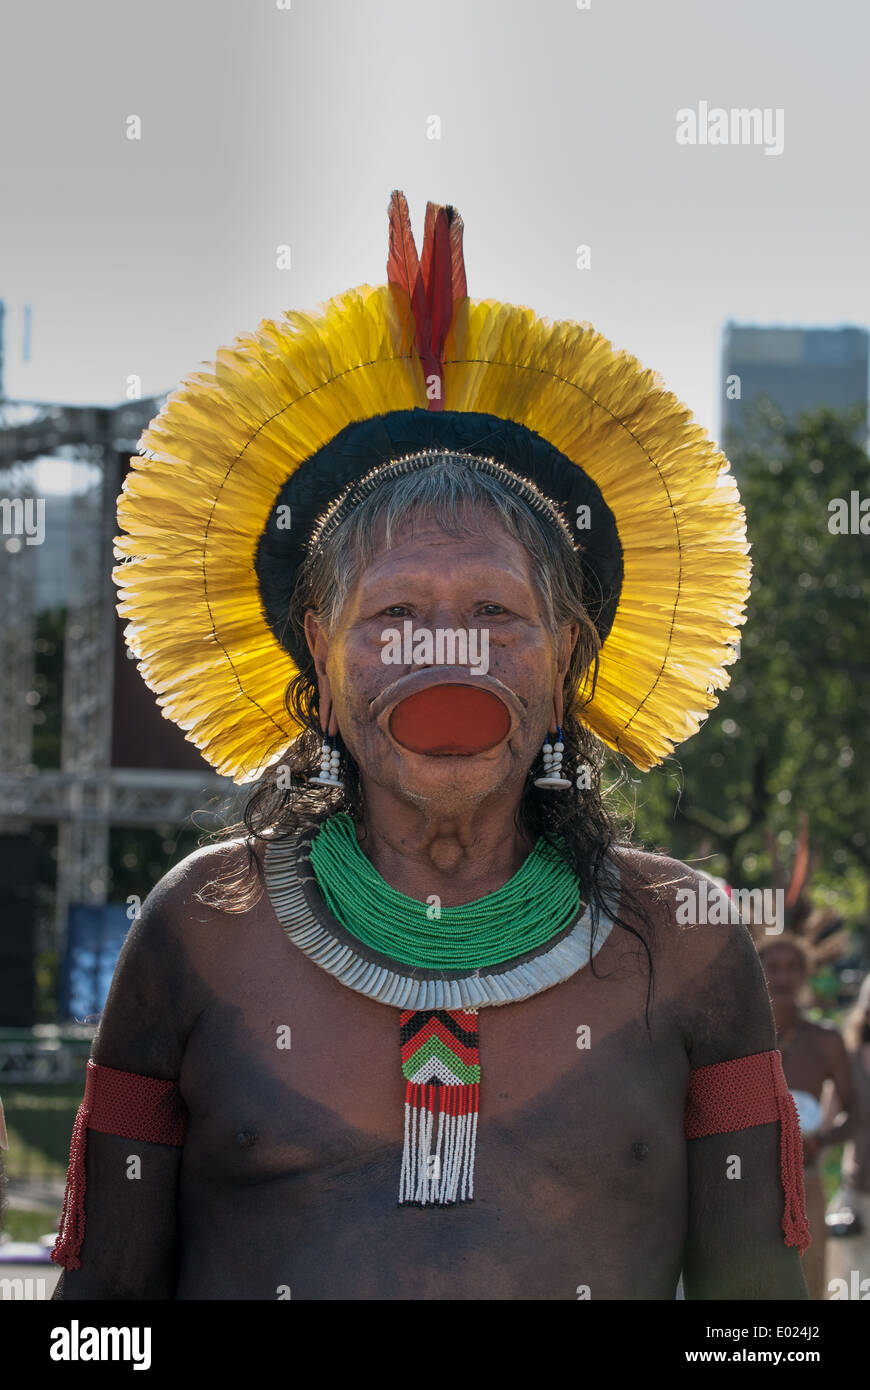 Kayapo Chief Raoni Txucarrhamae with yellow headress. The People's Summit at the United Nations Conference on Sustainable Development, Rio de Janeiro, Brazil, 16th June 2012. - Stock Image